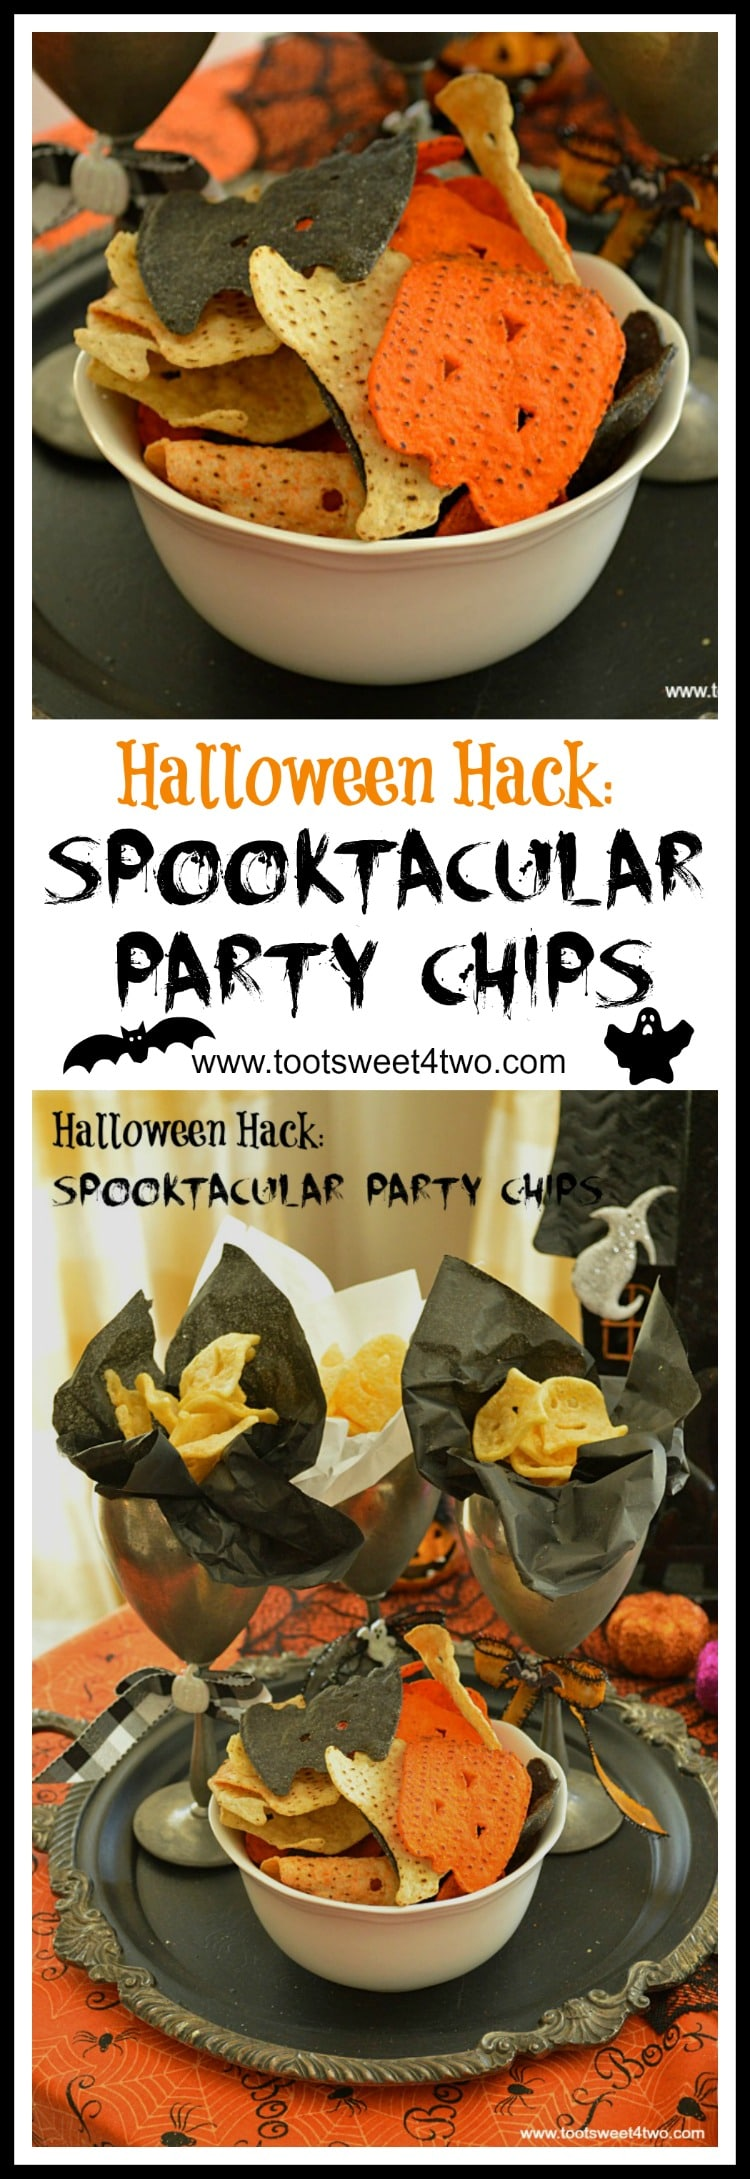 Spooktacular Party Chips Pinterest